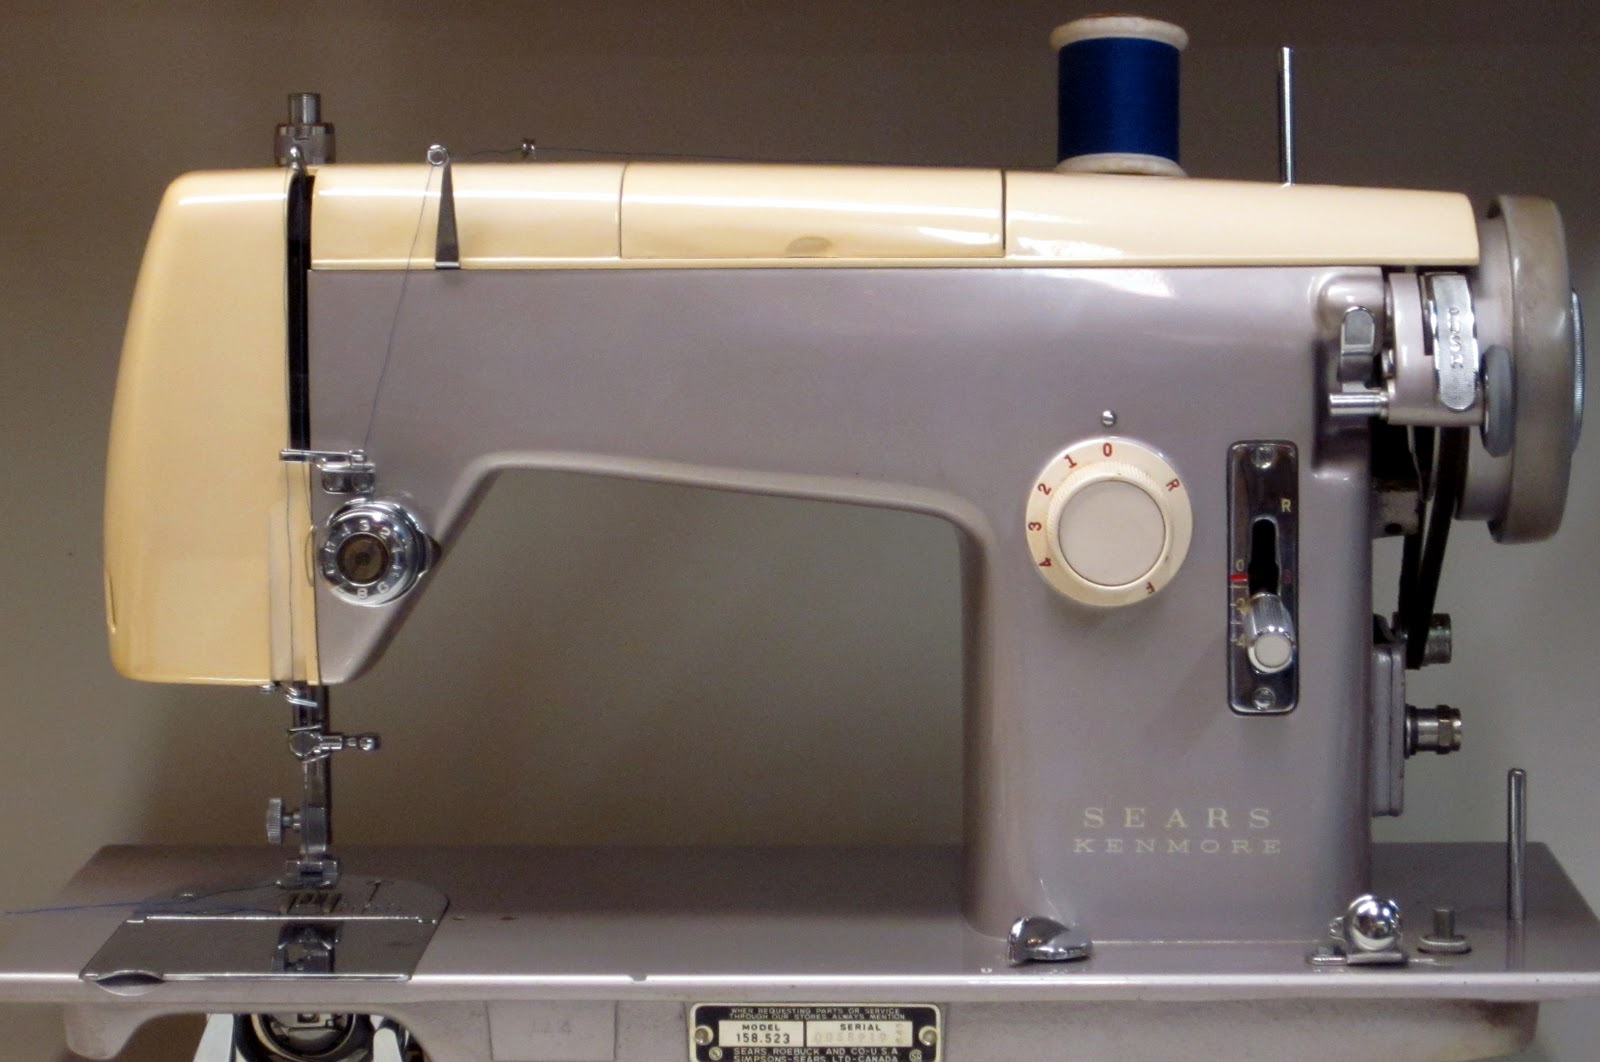 At the local Church rummage sale this Kenmore (made in 1966) was calling me.